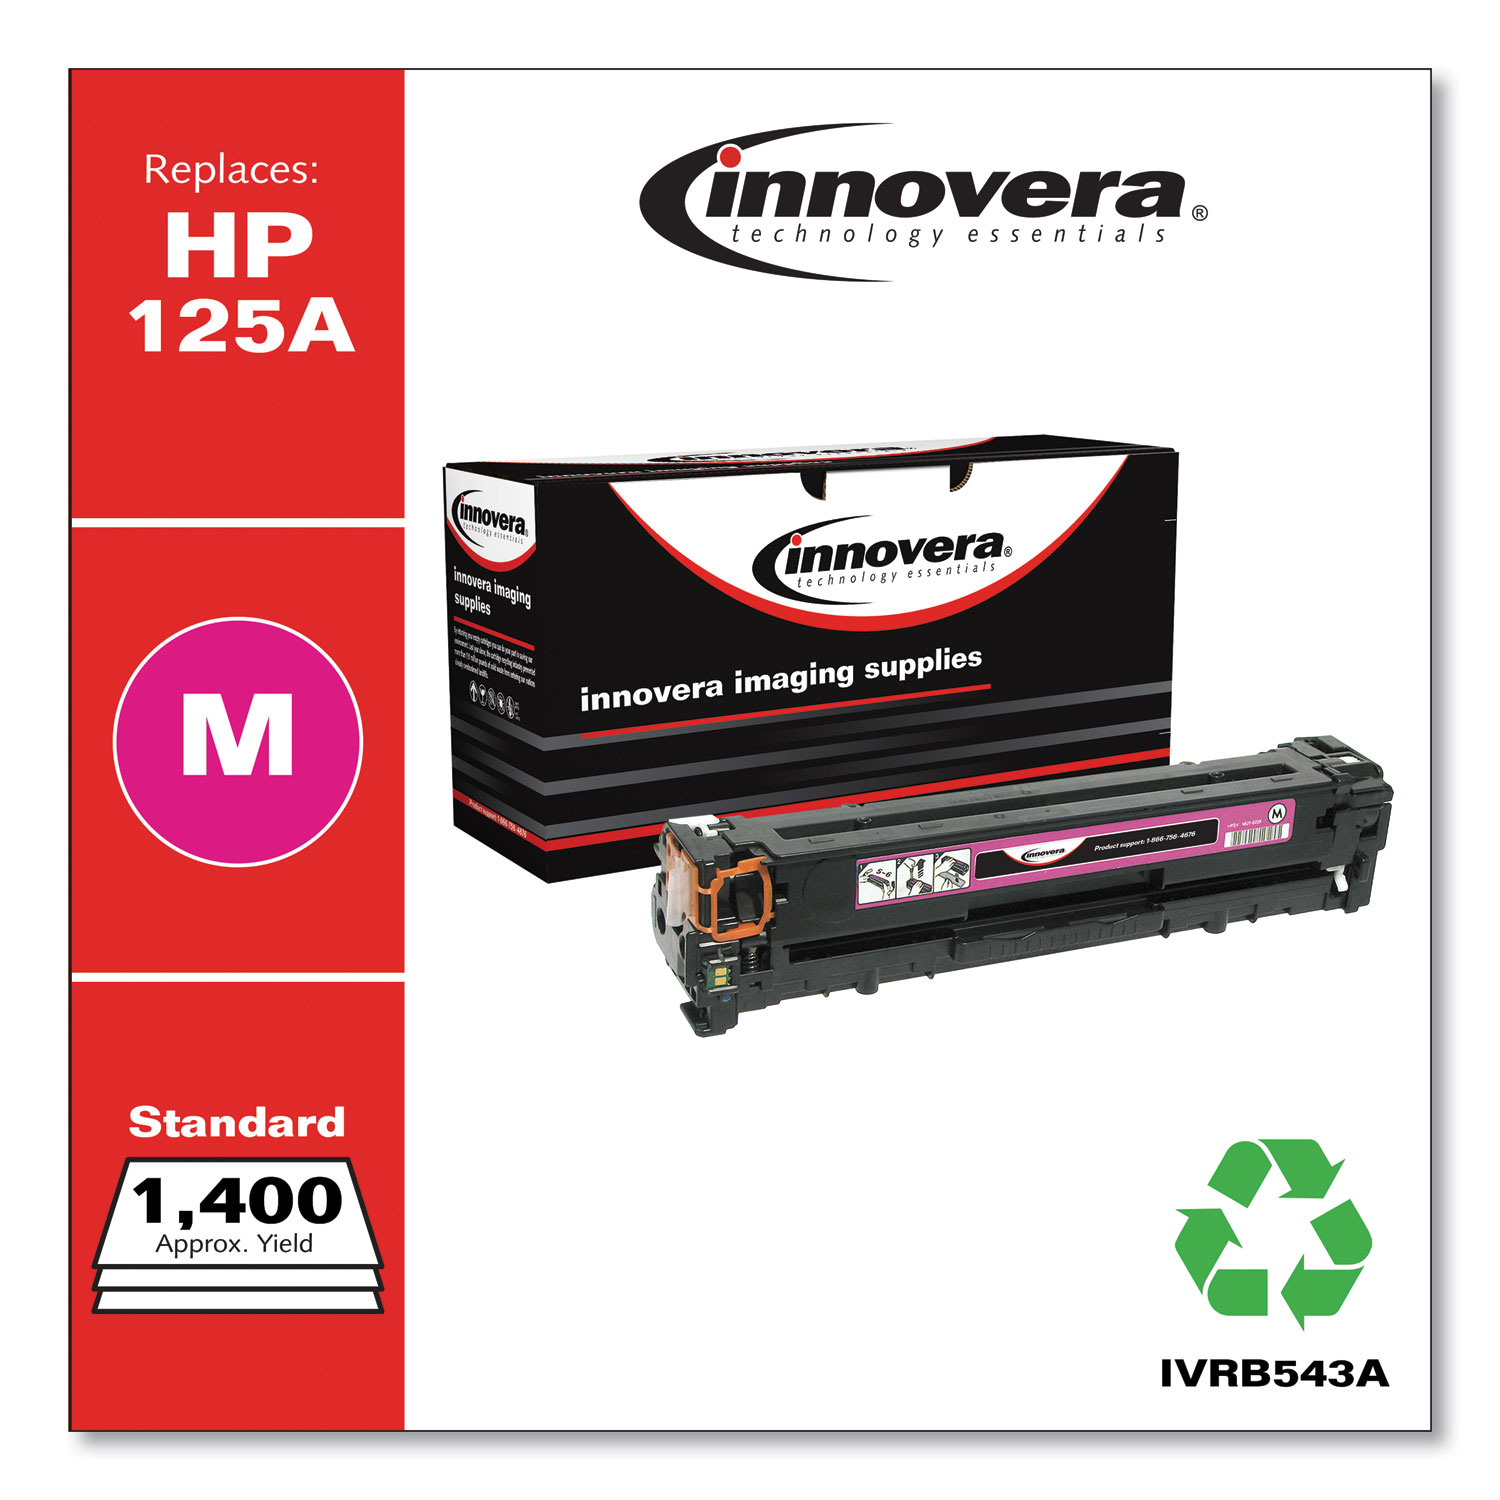 Remanufactured Magenta Toner, Replacement for HP 125A (CB543A), 1,400 Page-Yield IVRB543A